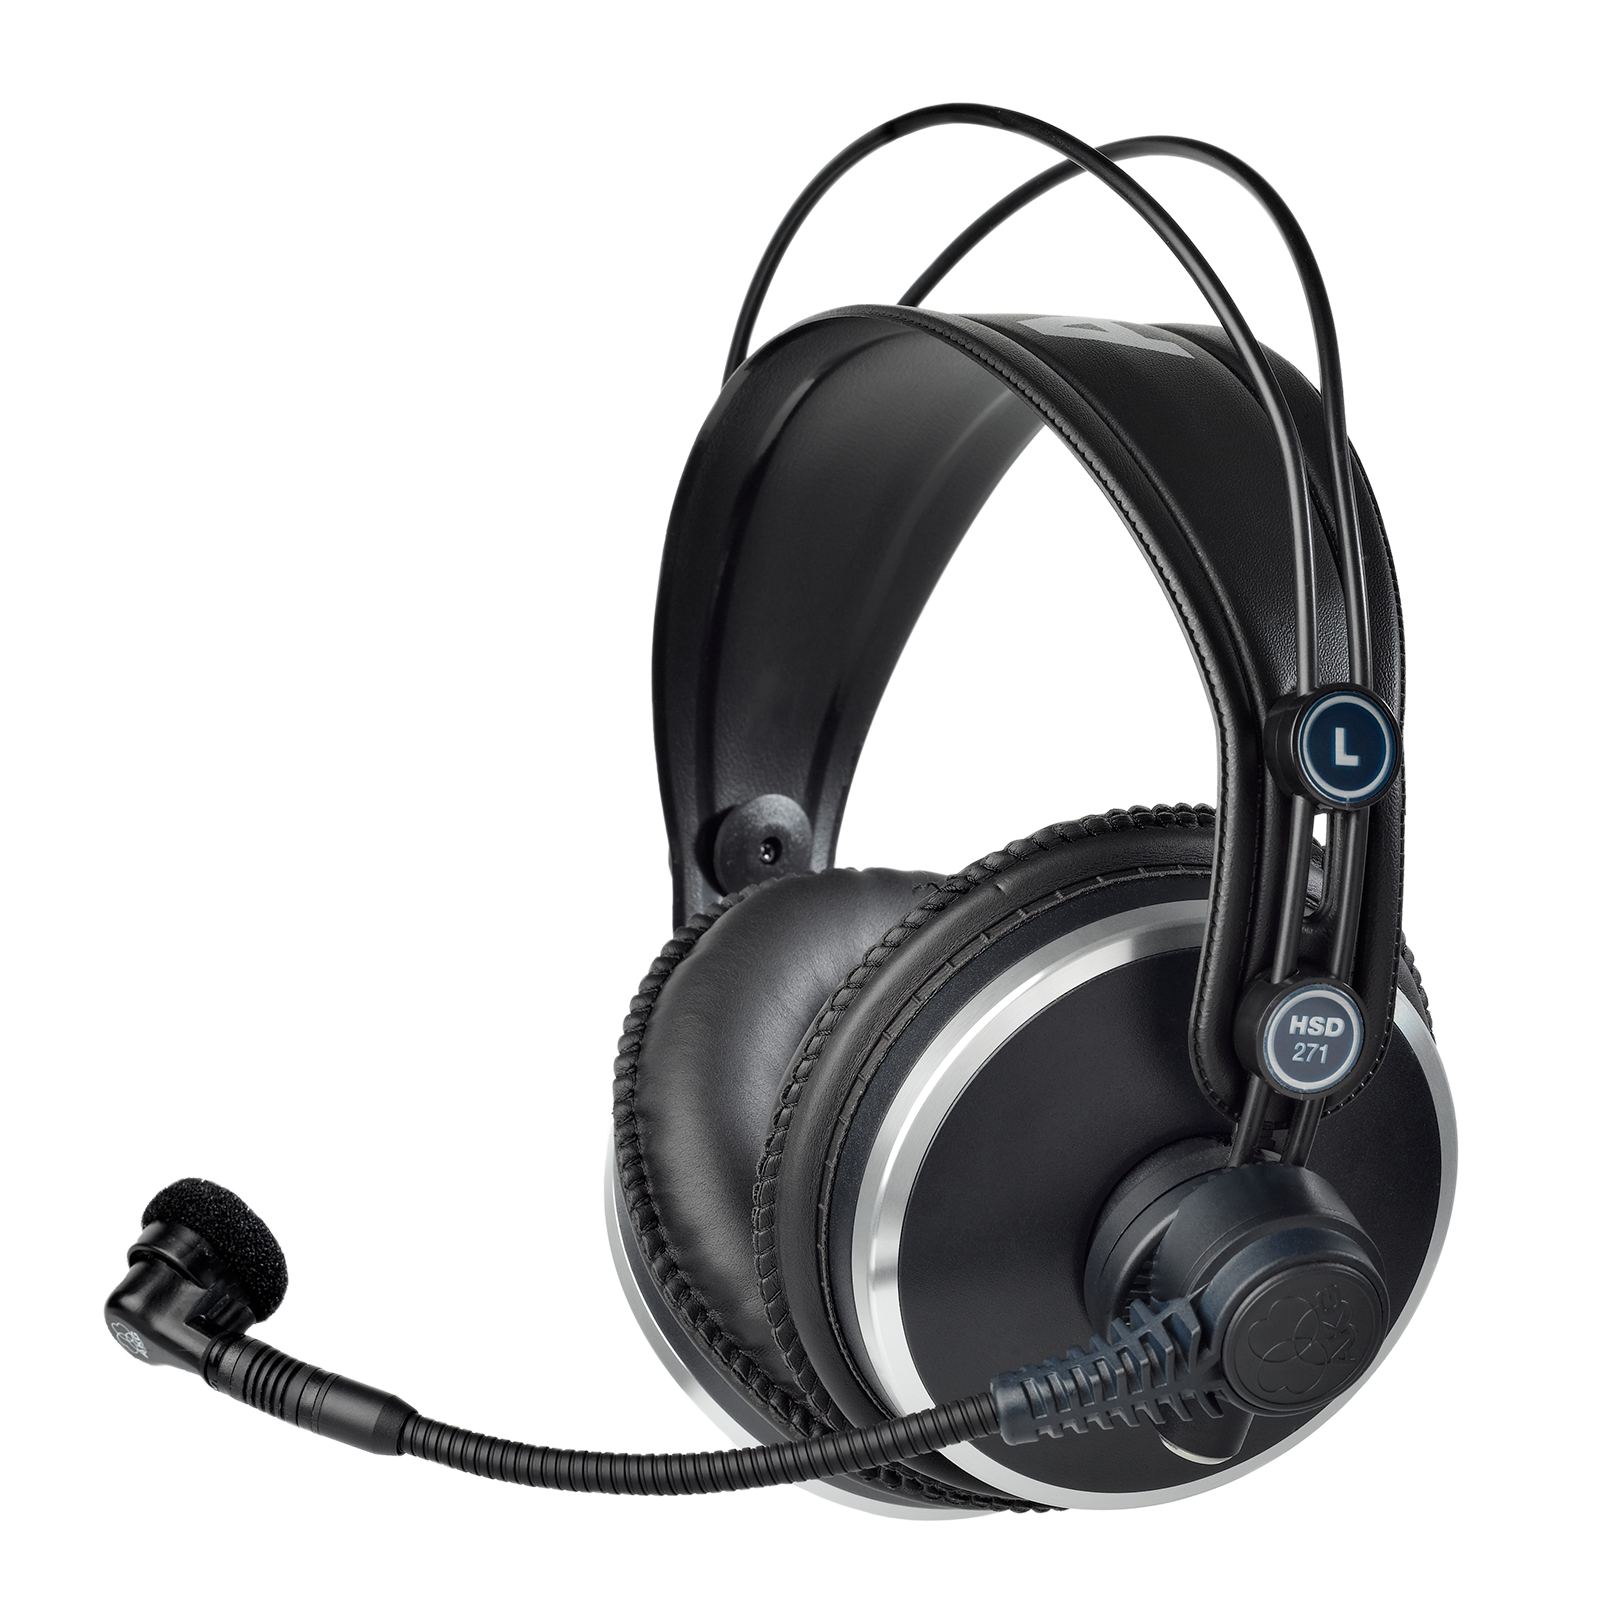 HSD271 - Black - Professional over-ear headset with dynamic microphone - Hero